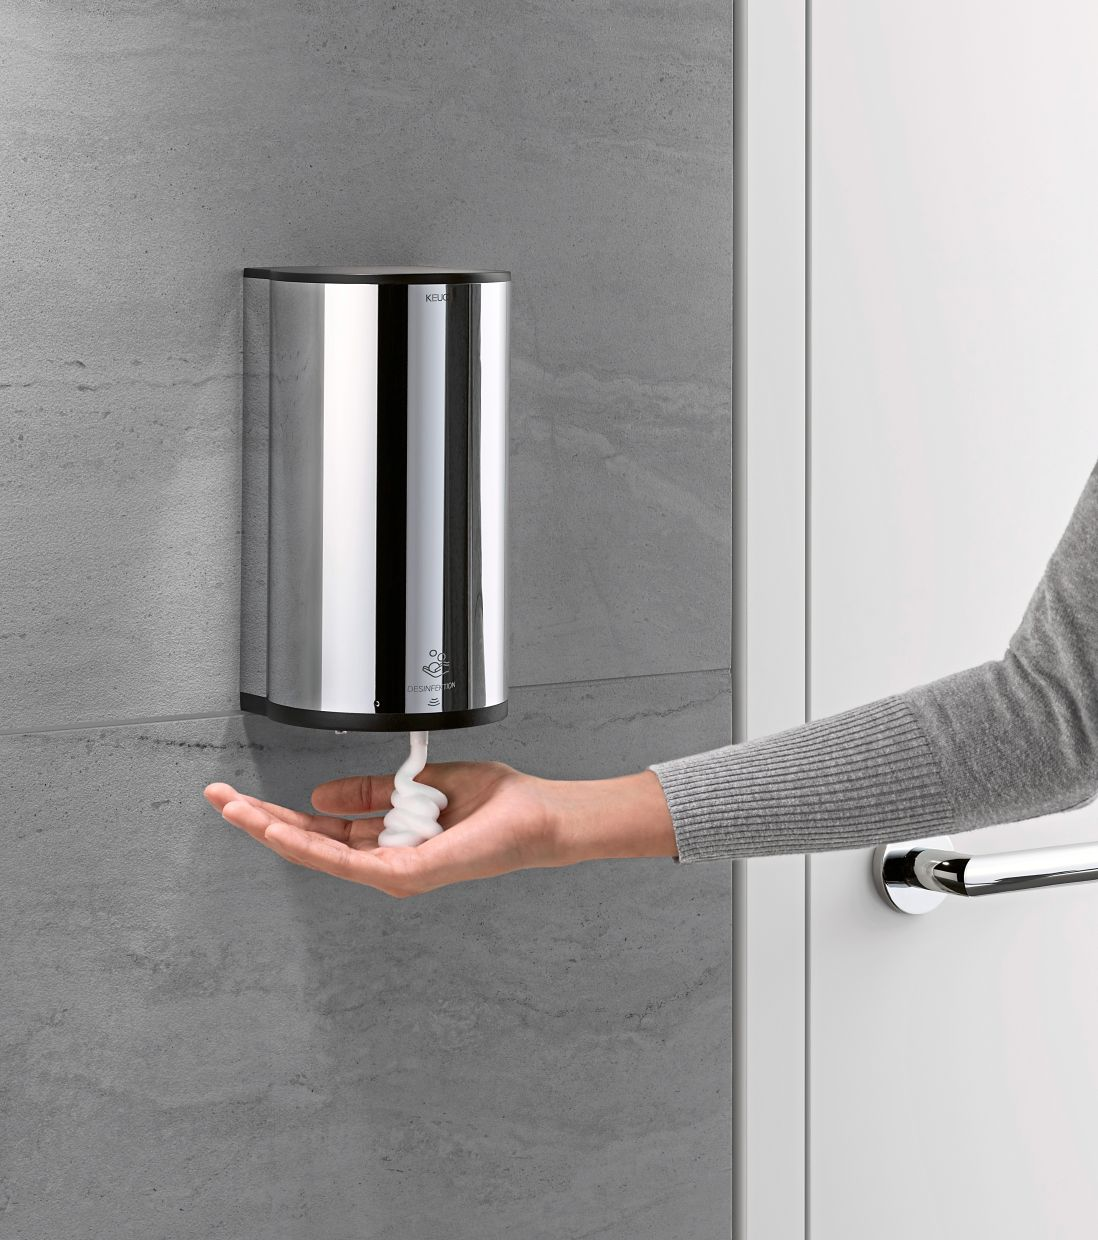 This soap dispenser from Keuco with infrared sensor can also integrate disinfectants. Photo: Keuco/dpa